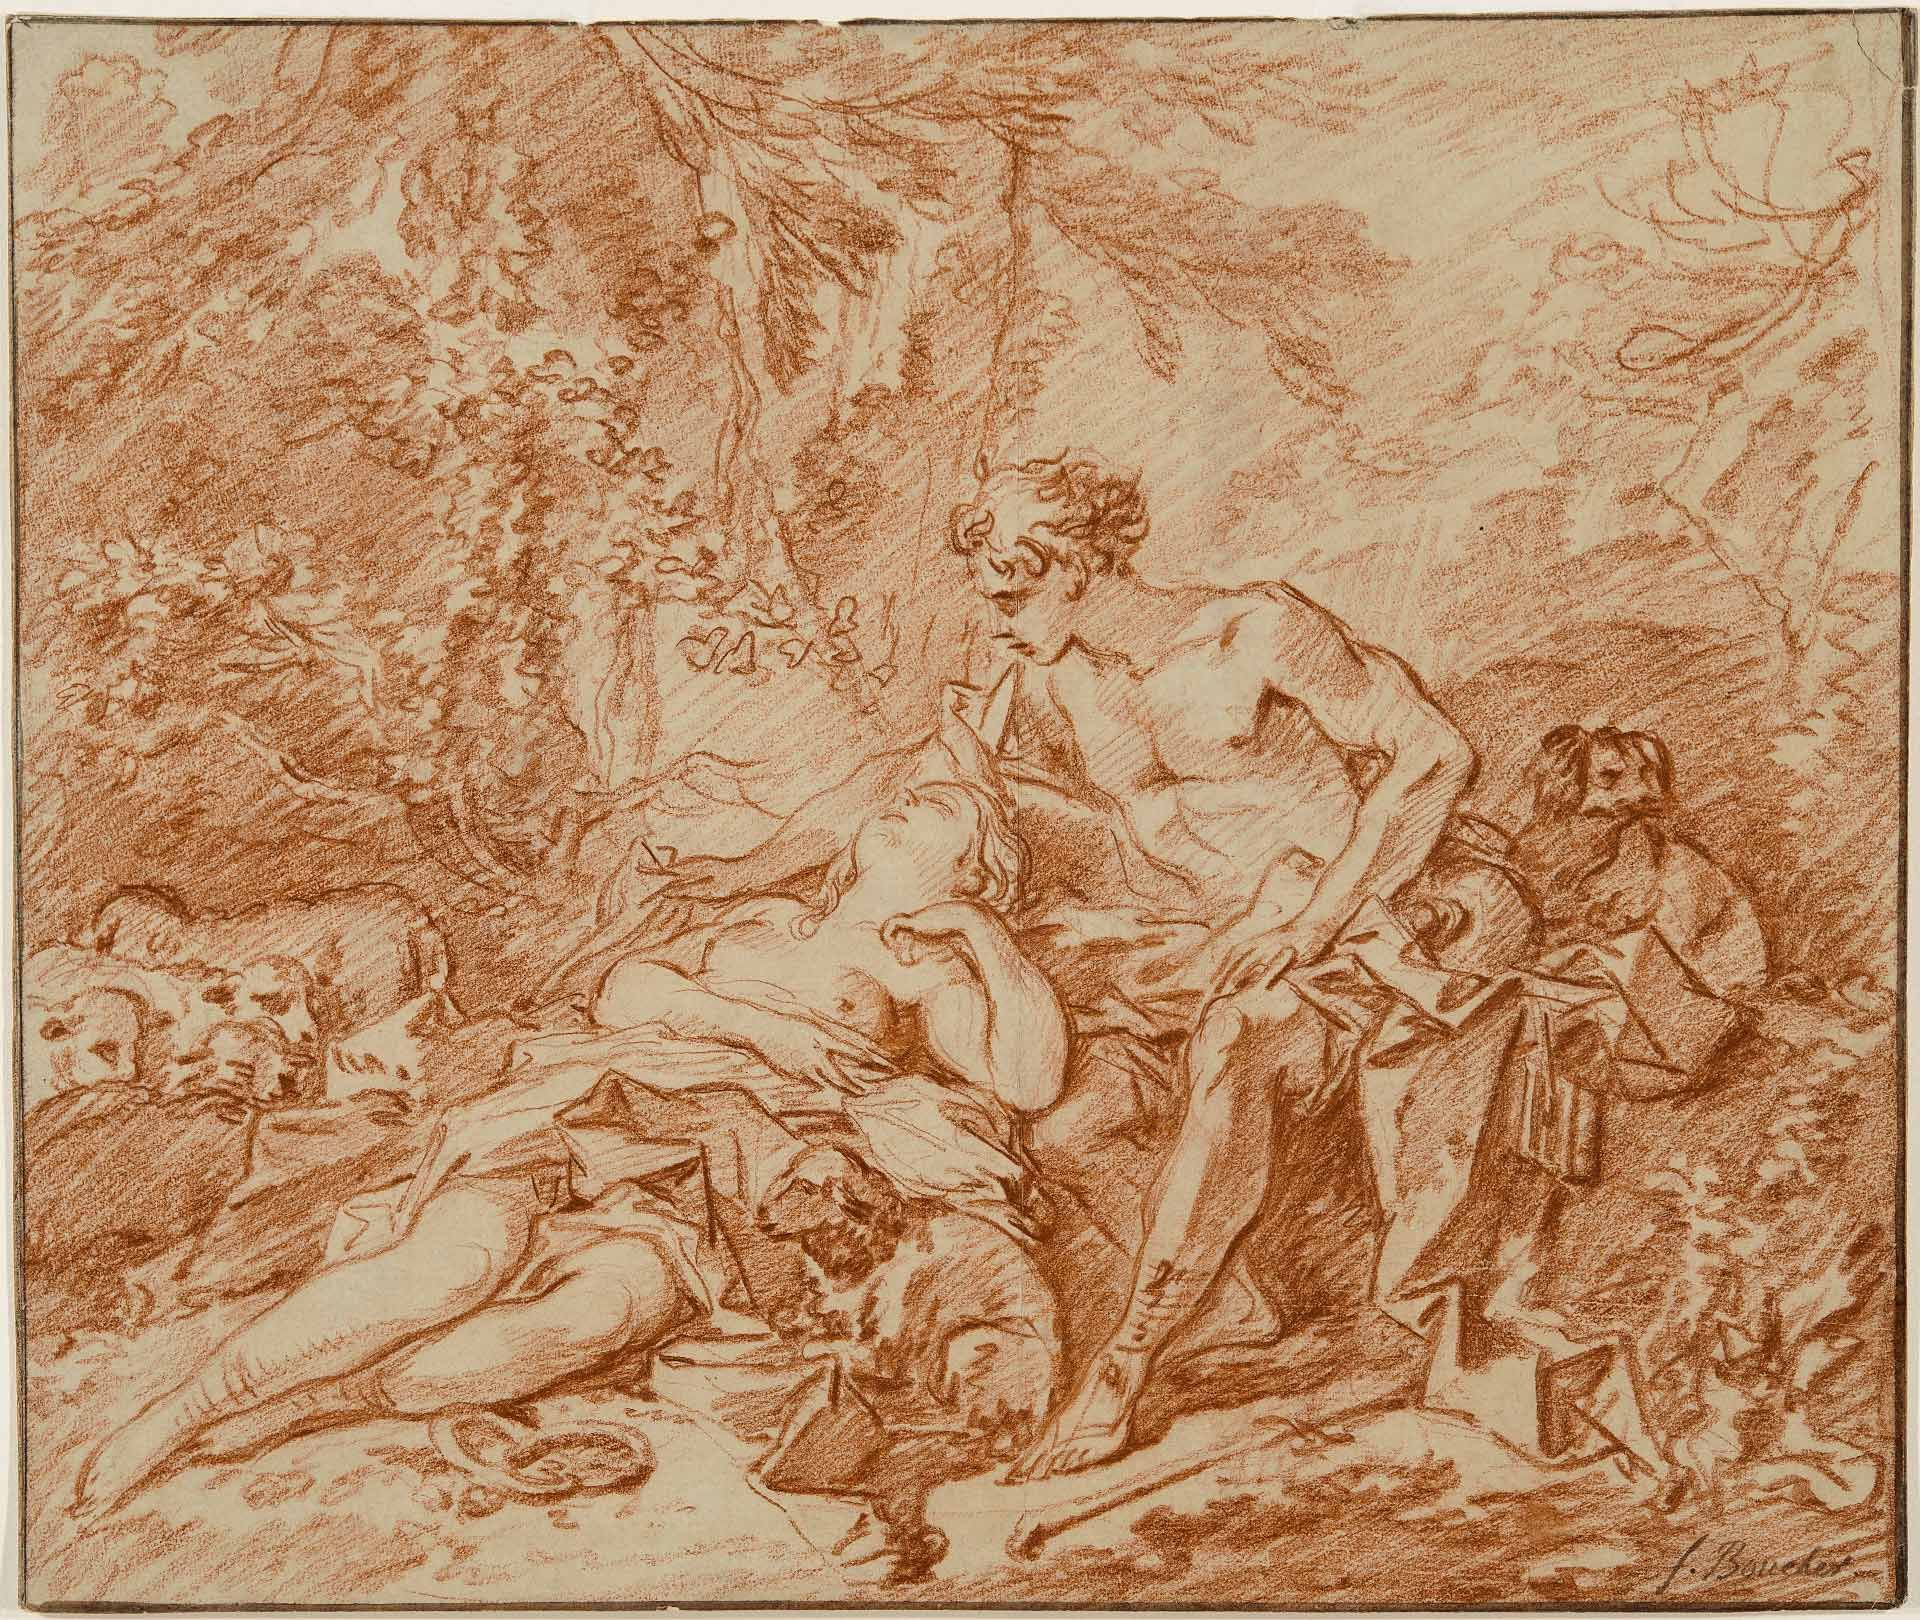 Study for the Daphnis and Chloe in the Wallace Collection, London